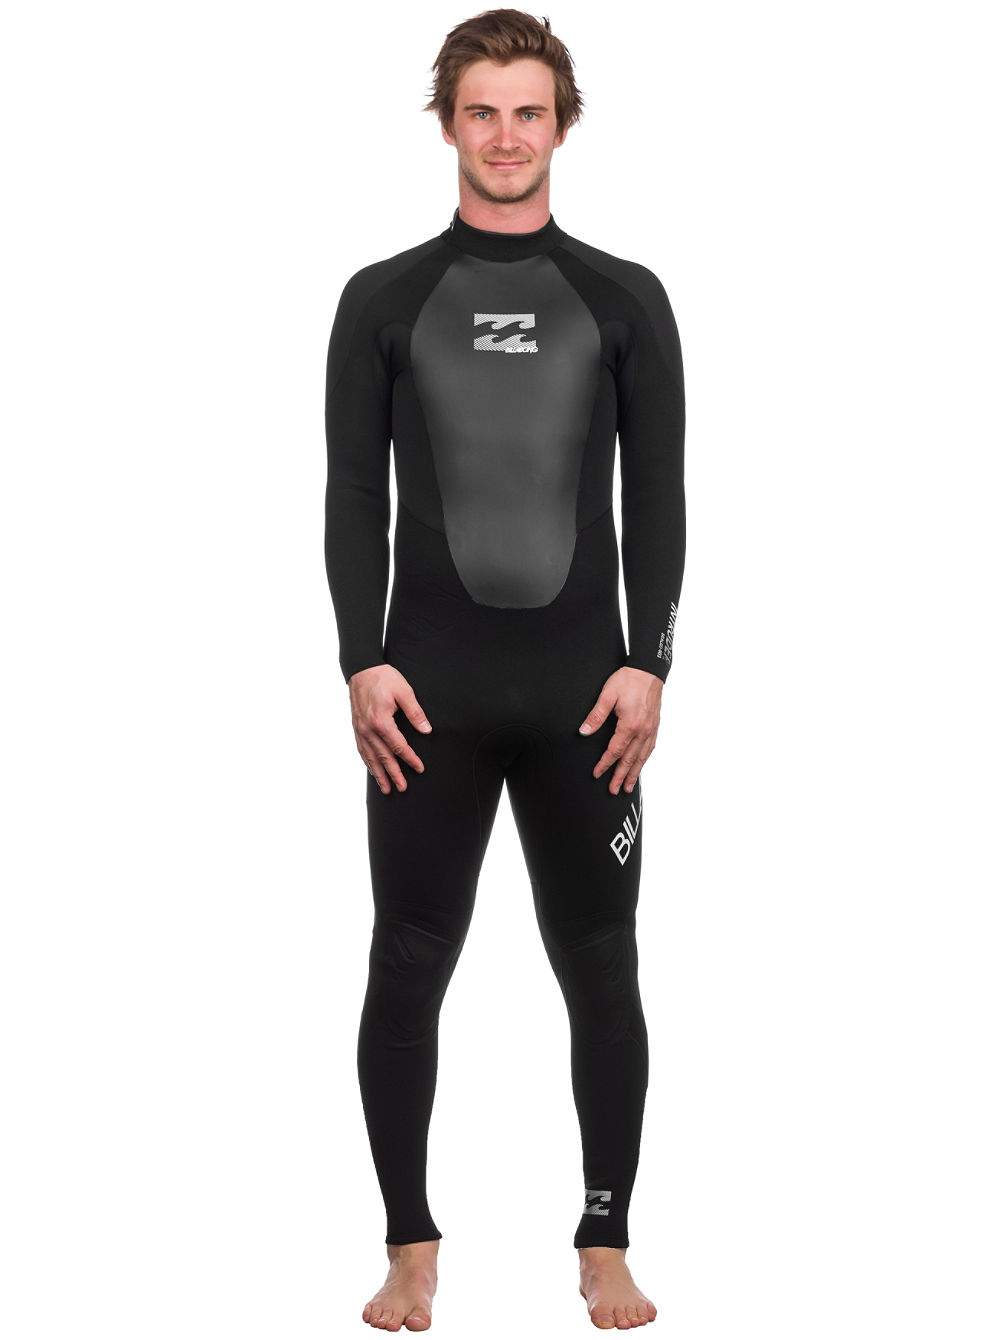 e4171c6c9e7 Buy Billabong Intruder 4 3 Gbs Back Zip Wetsuit online at Blue Tomato